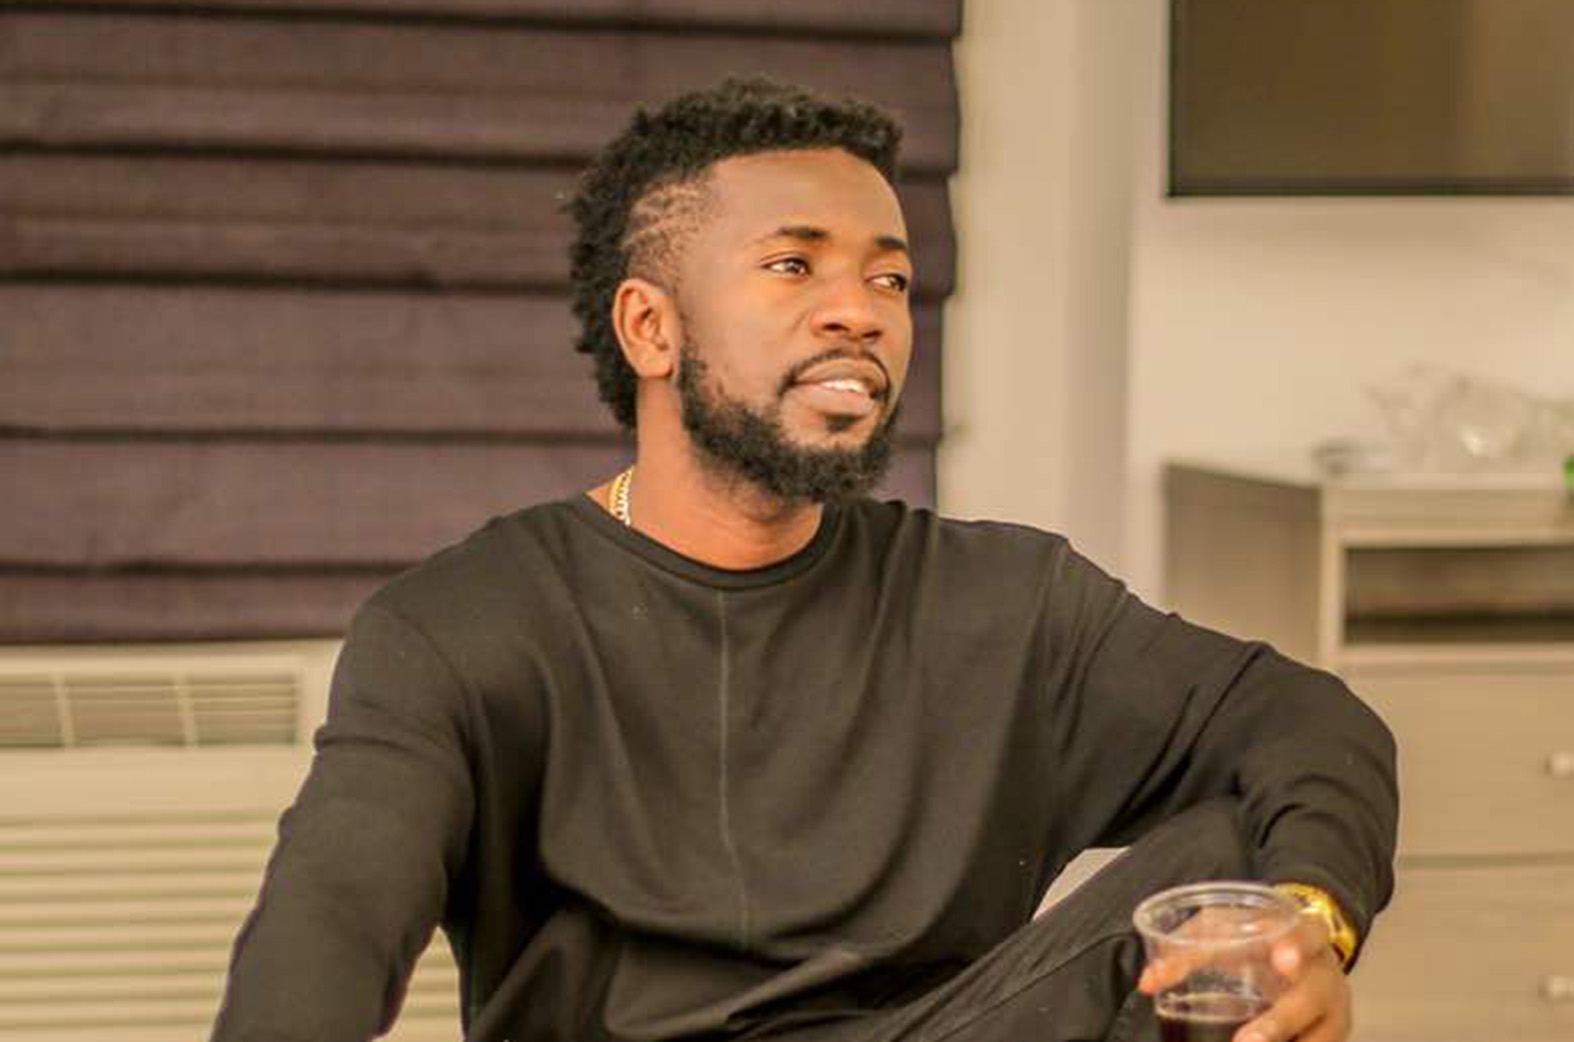 Highlife singer Bisa Kdei arrested in USA for trespassing